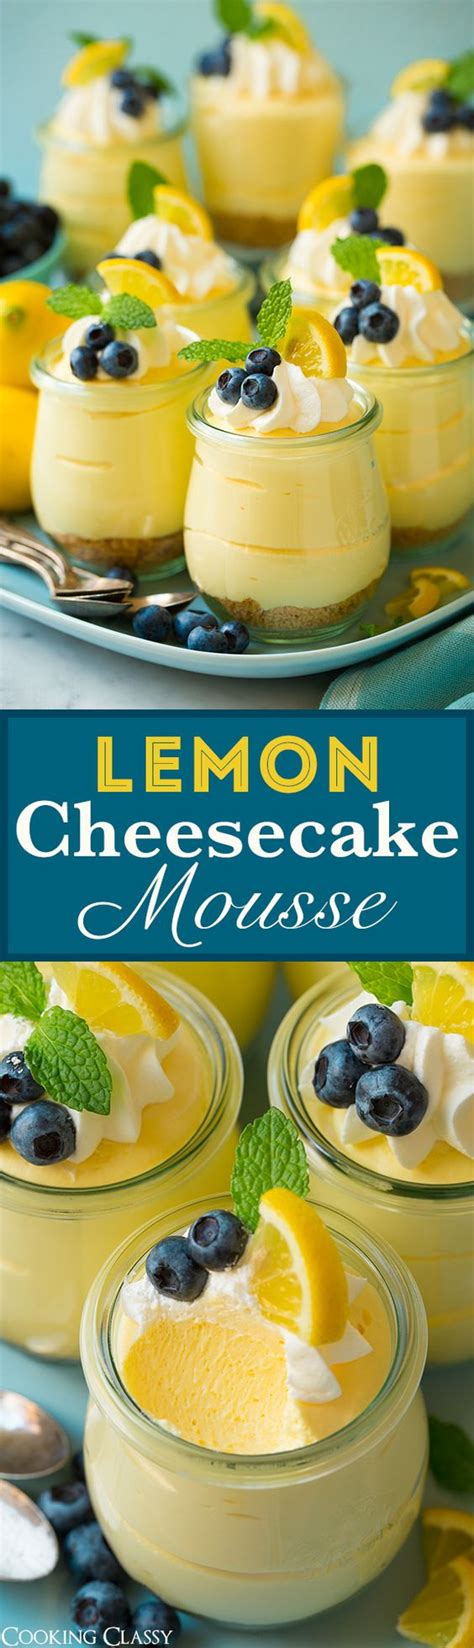 You don't have to be vegan to enjoy this. The BEST Easy Lemon Desserts and Treats Recipes - Perfect For Easter, Mother's Day Brunch ...